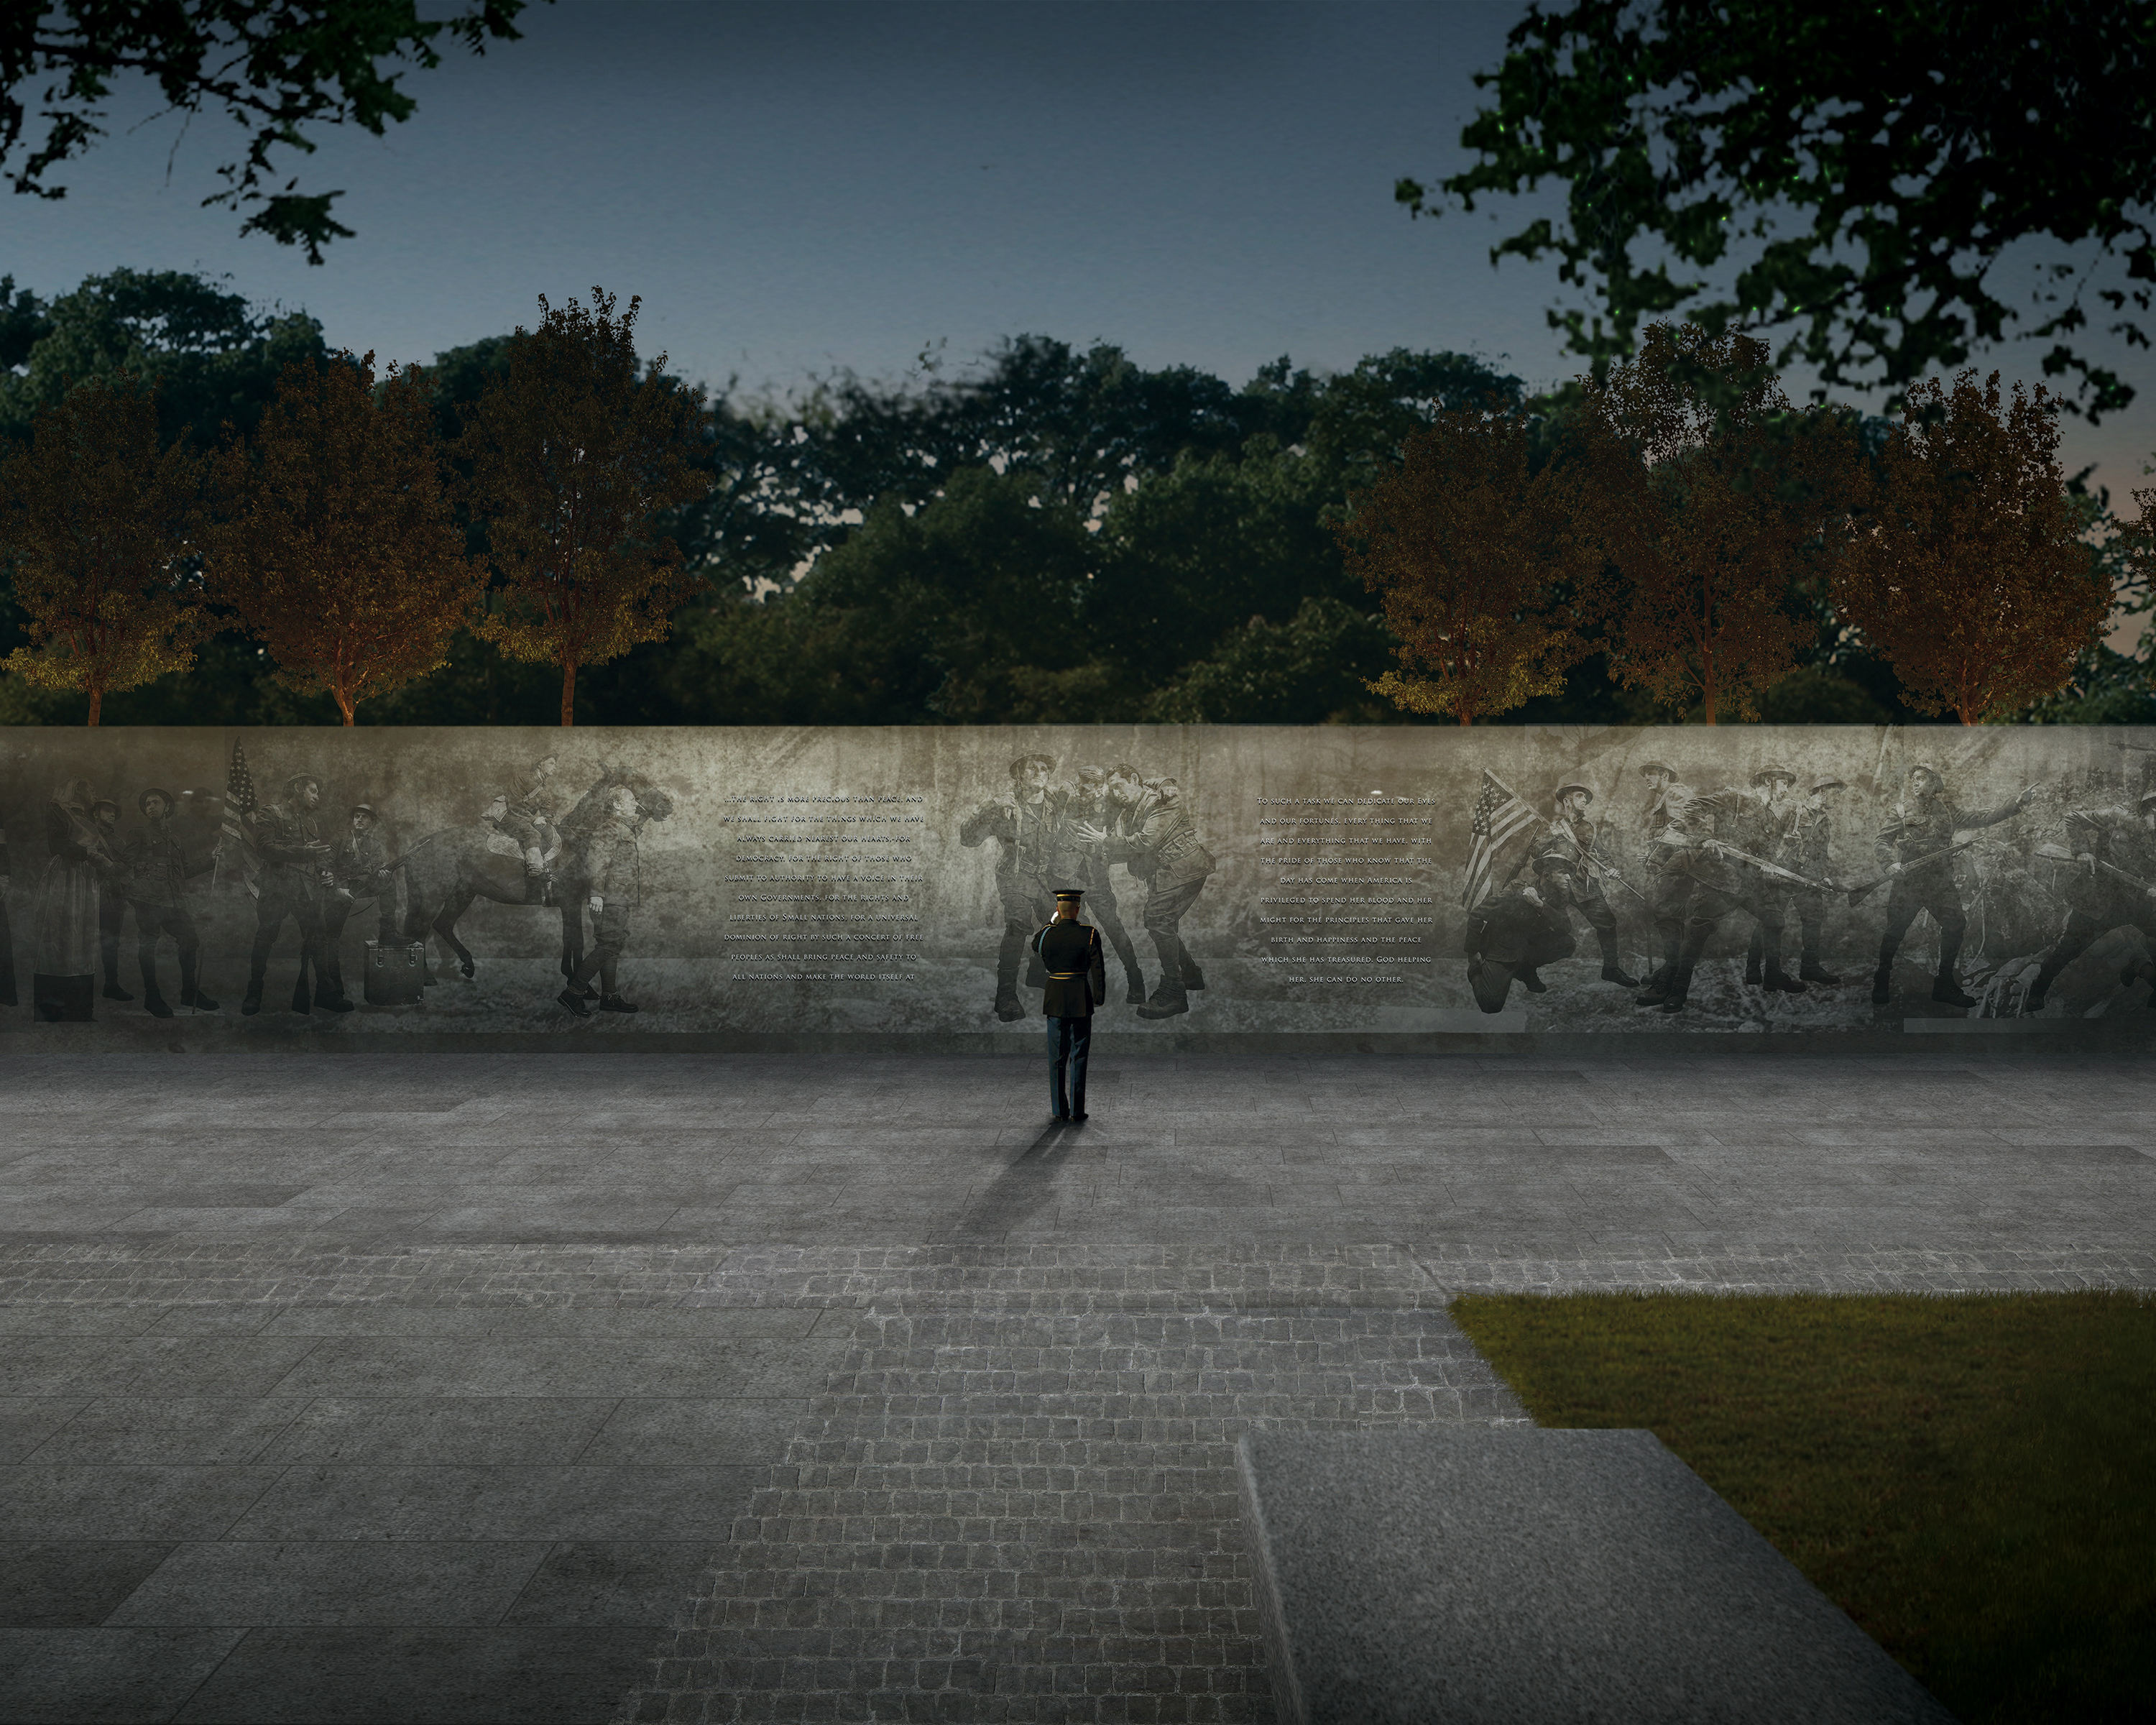 World War I Centennial Commission selects design for D.C. memorial